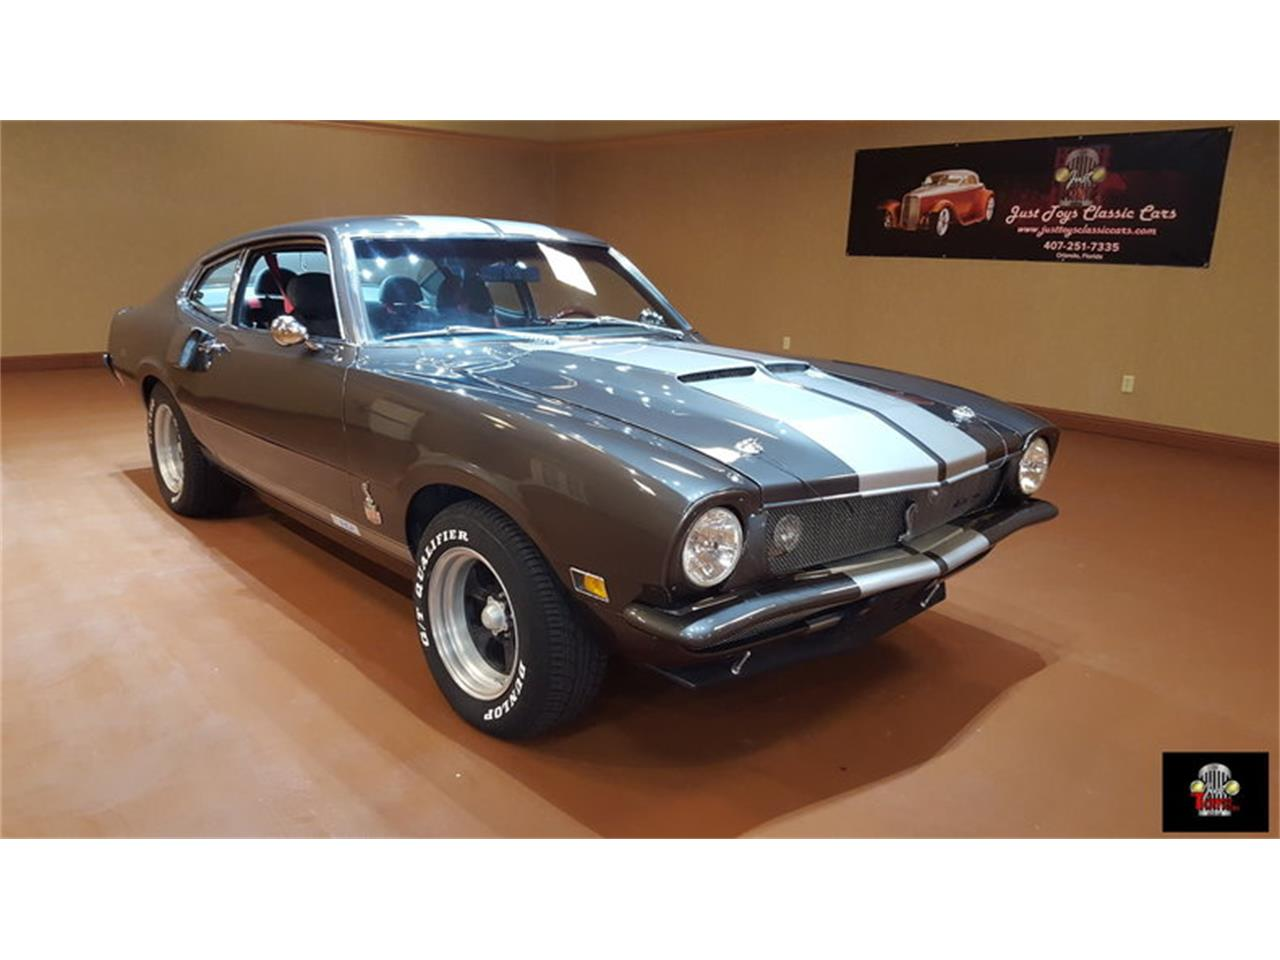 Shelby Ford Trucks >> 1973 Ford Maverick Shelby Tribute for Sale | ClassicCars.com | CC-912930